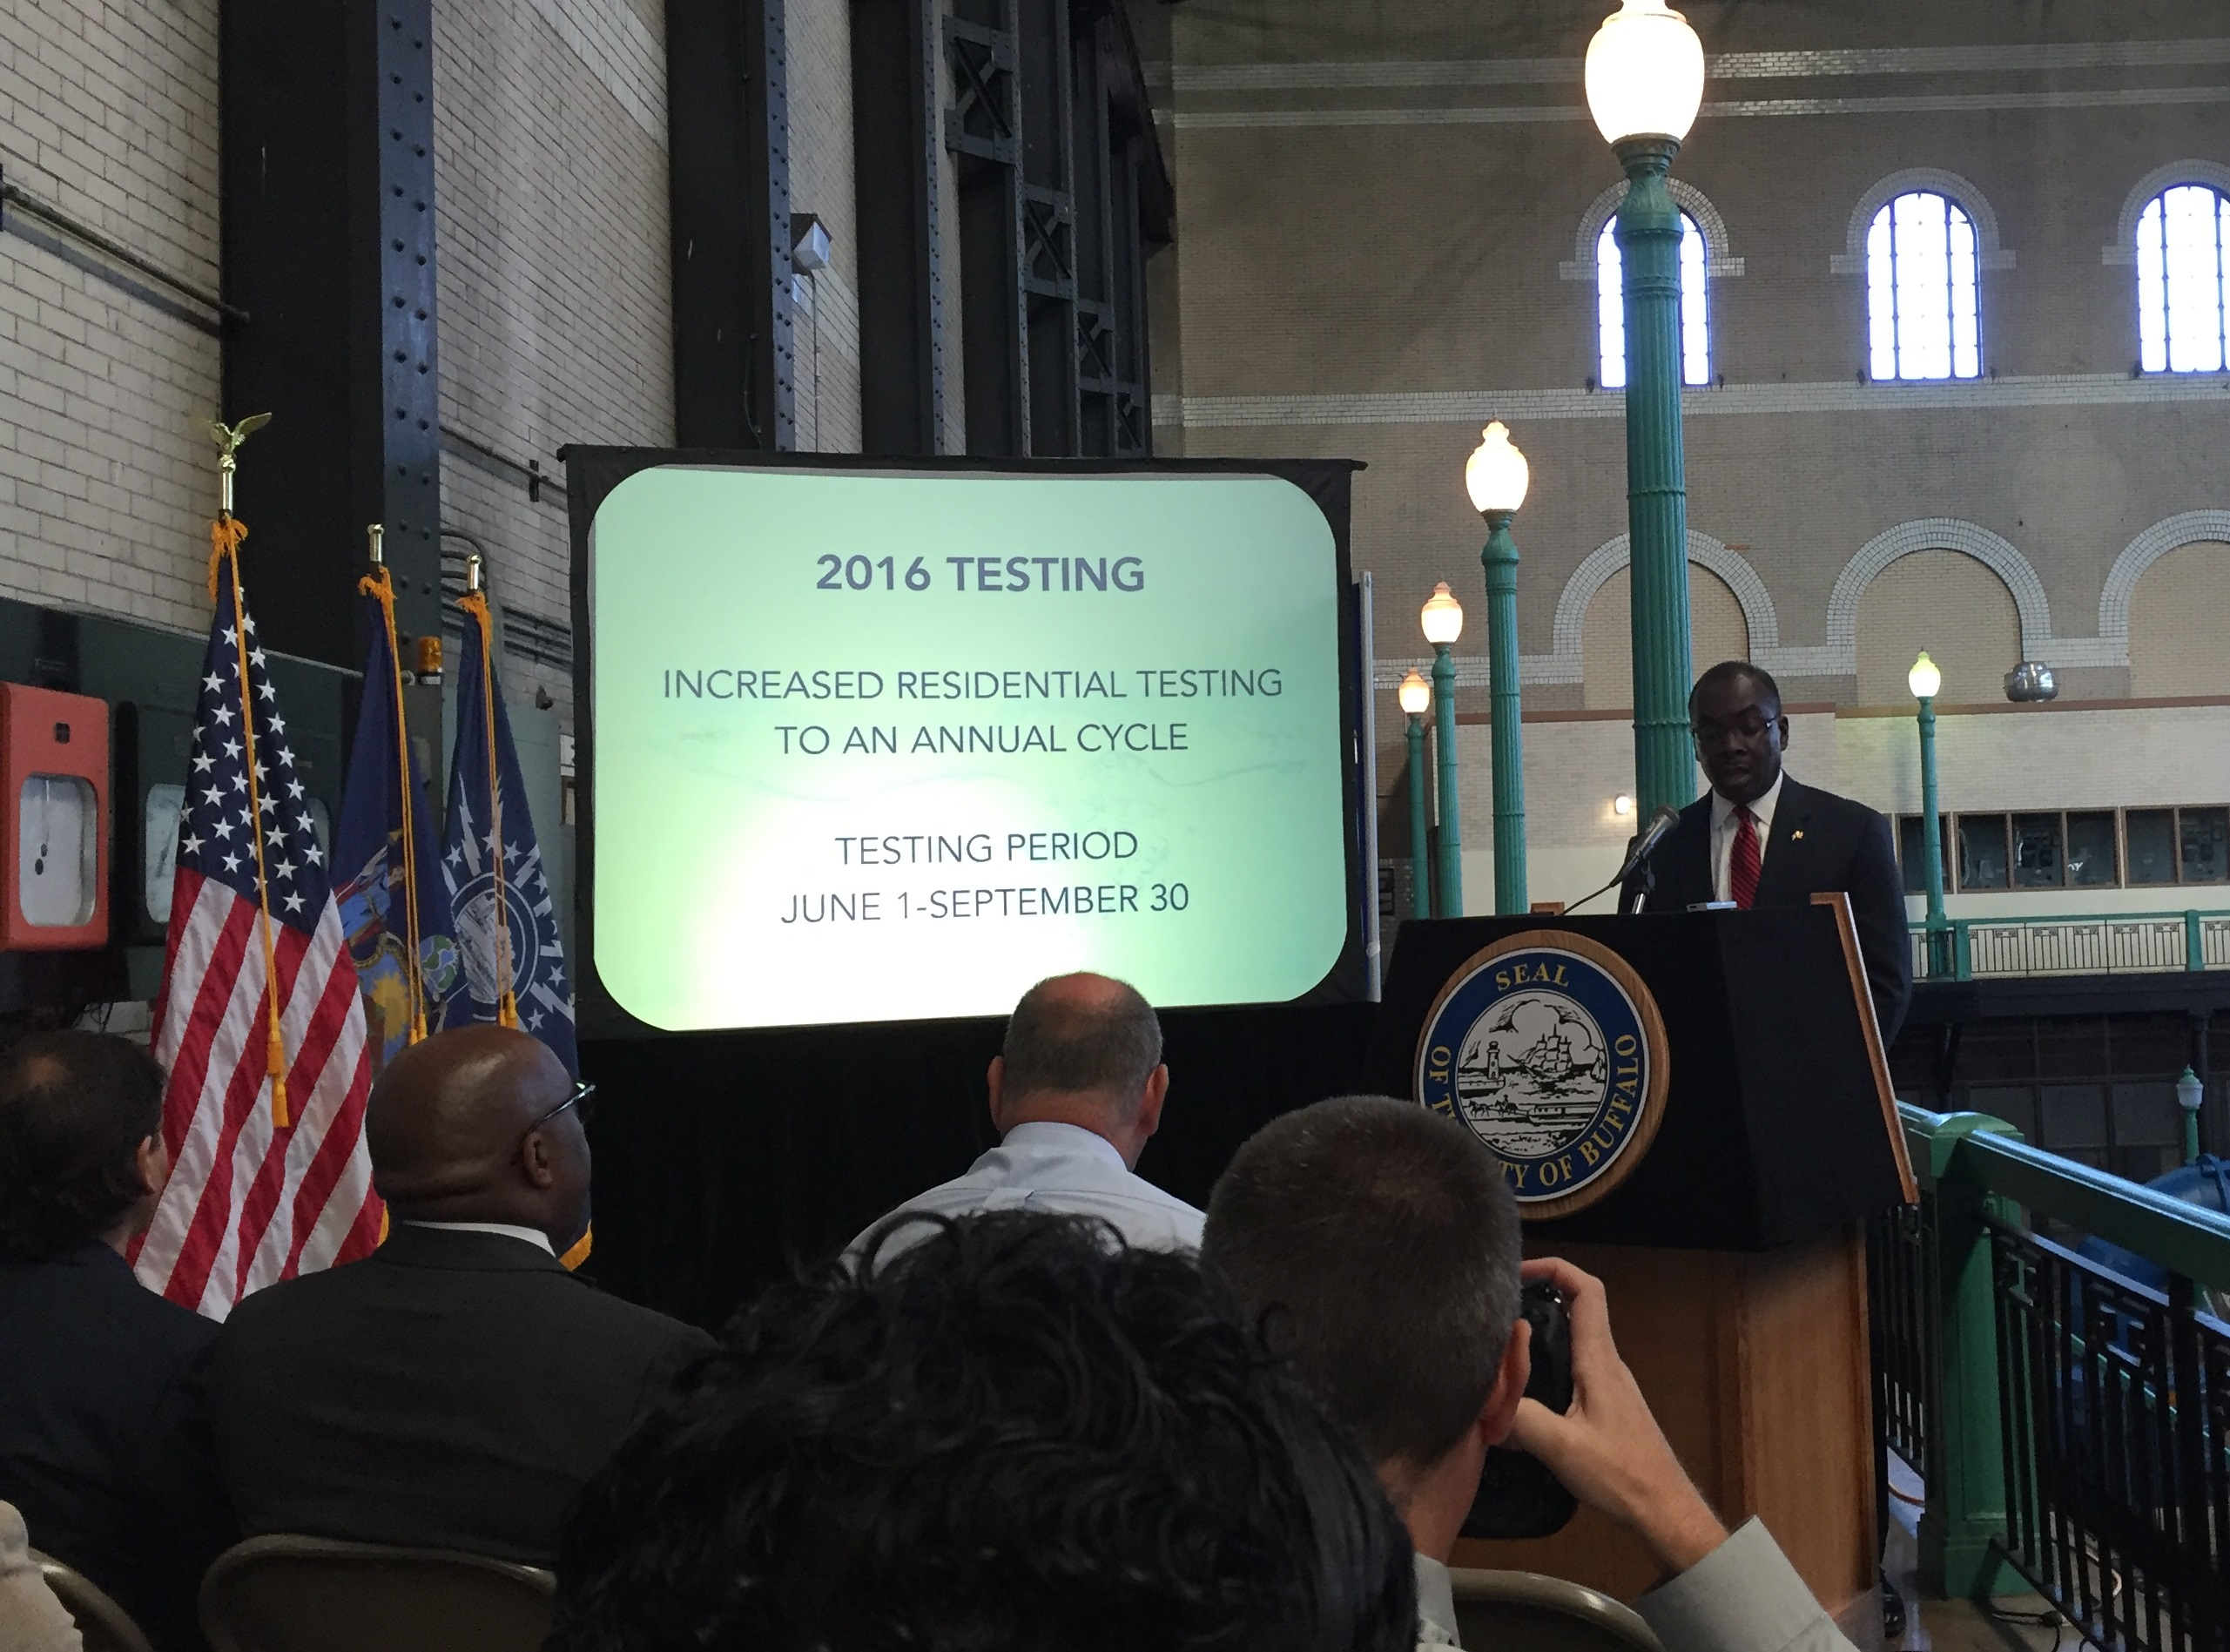 Buffalo Mayor Byron W. Brown announces results of drinking water testing from earlier this year during a news conference at the Col. Francis G. Ward Pumping Station. (Aaron Besecker/Buffalo News)